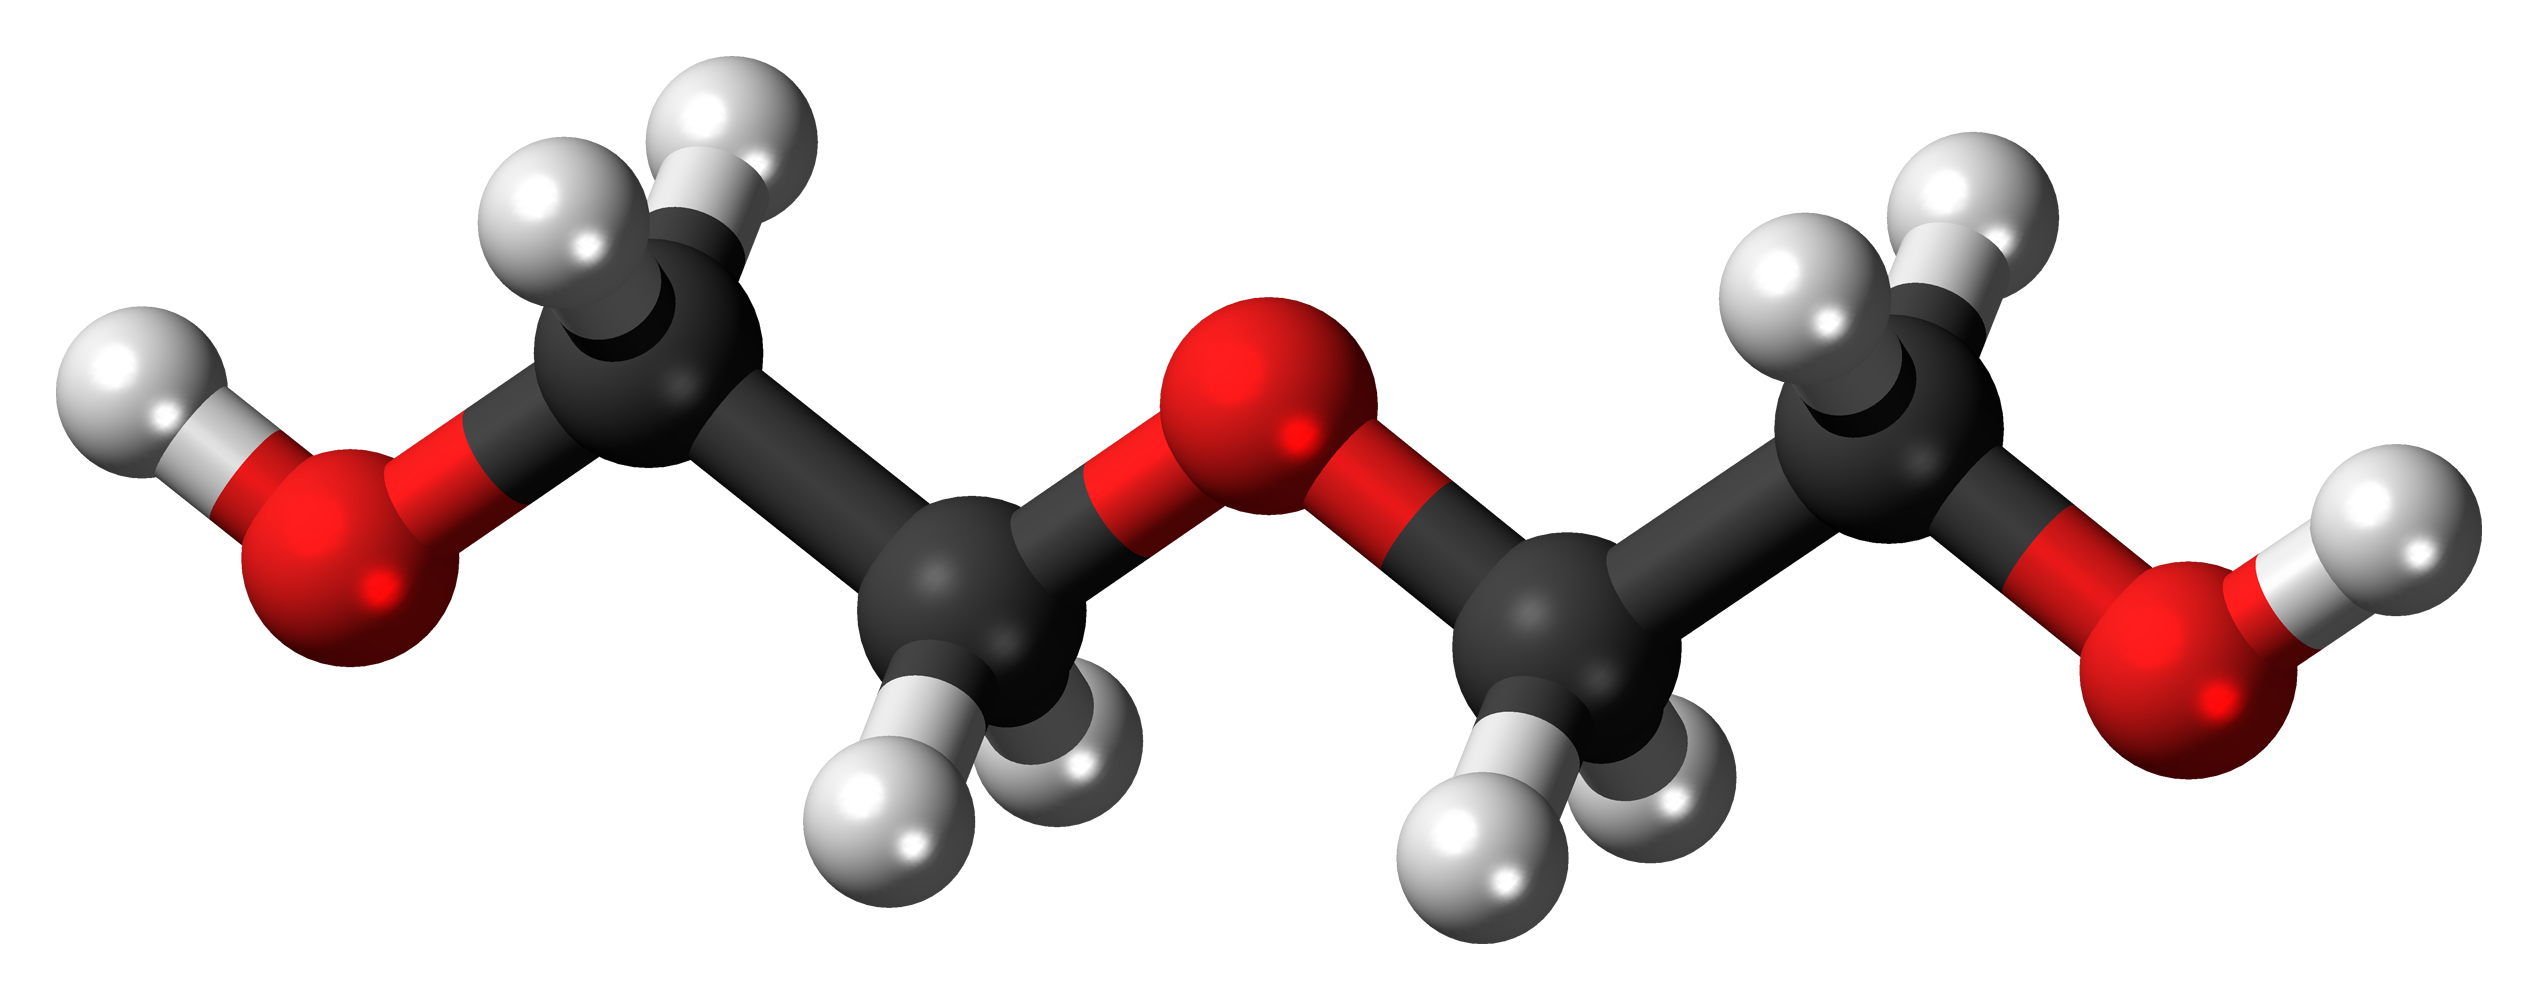 Fever clipart acidity. Diethylene glycol wikipedia